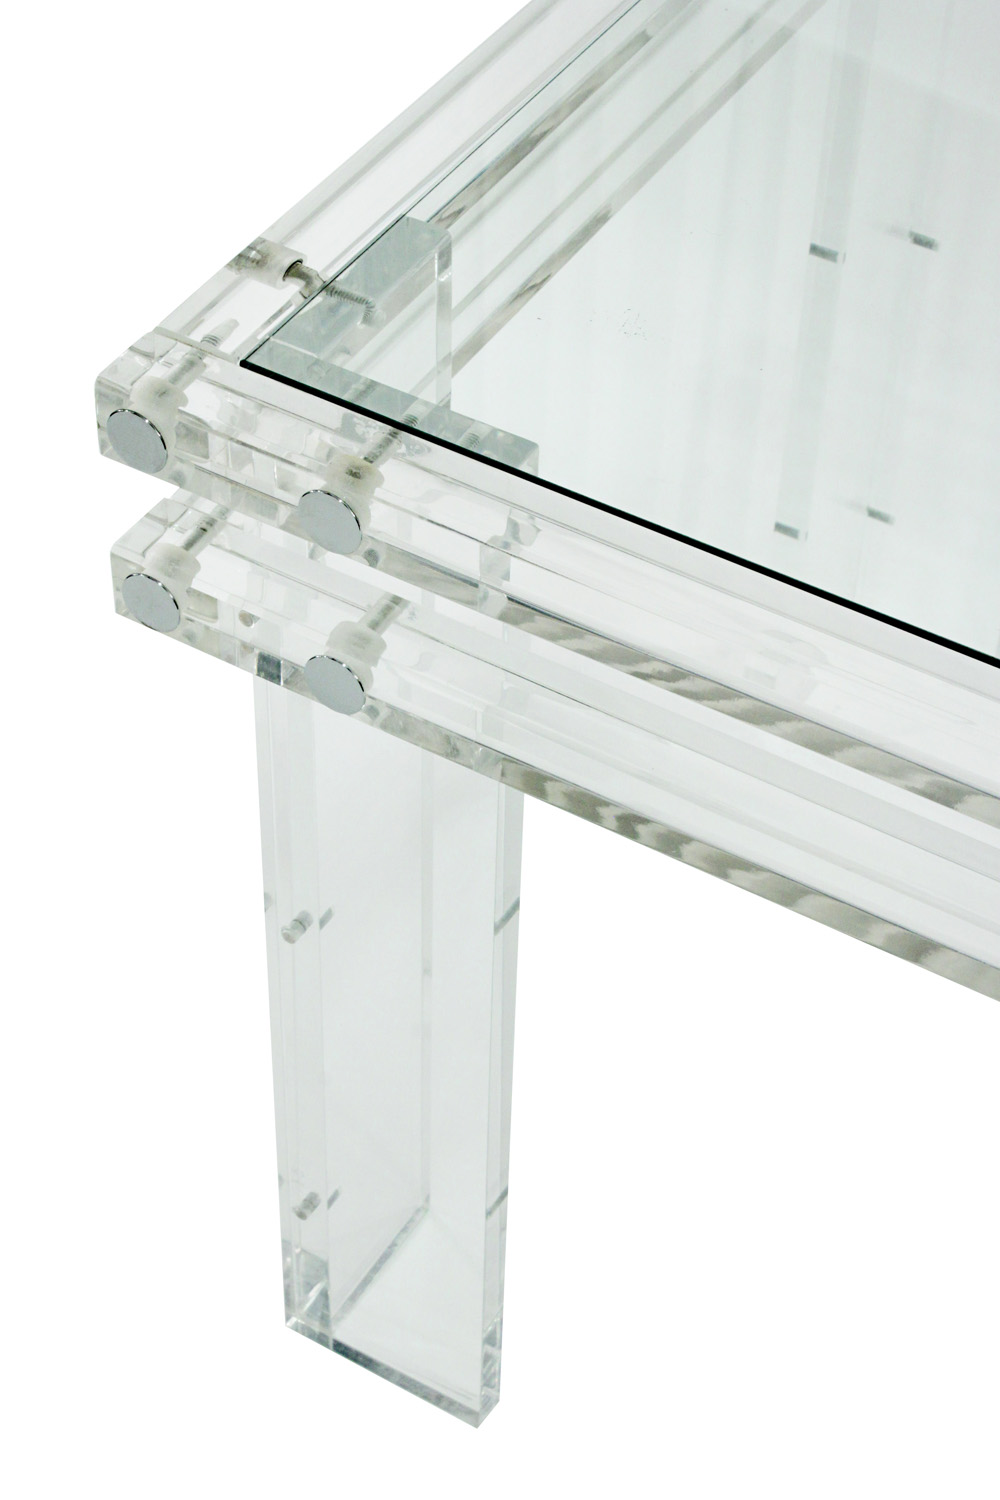 70s 35 square thick lucite+glass endtable143 detail2 hires.jpg